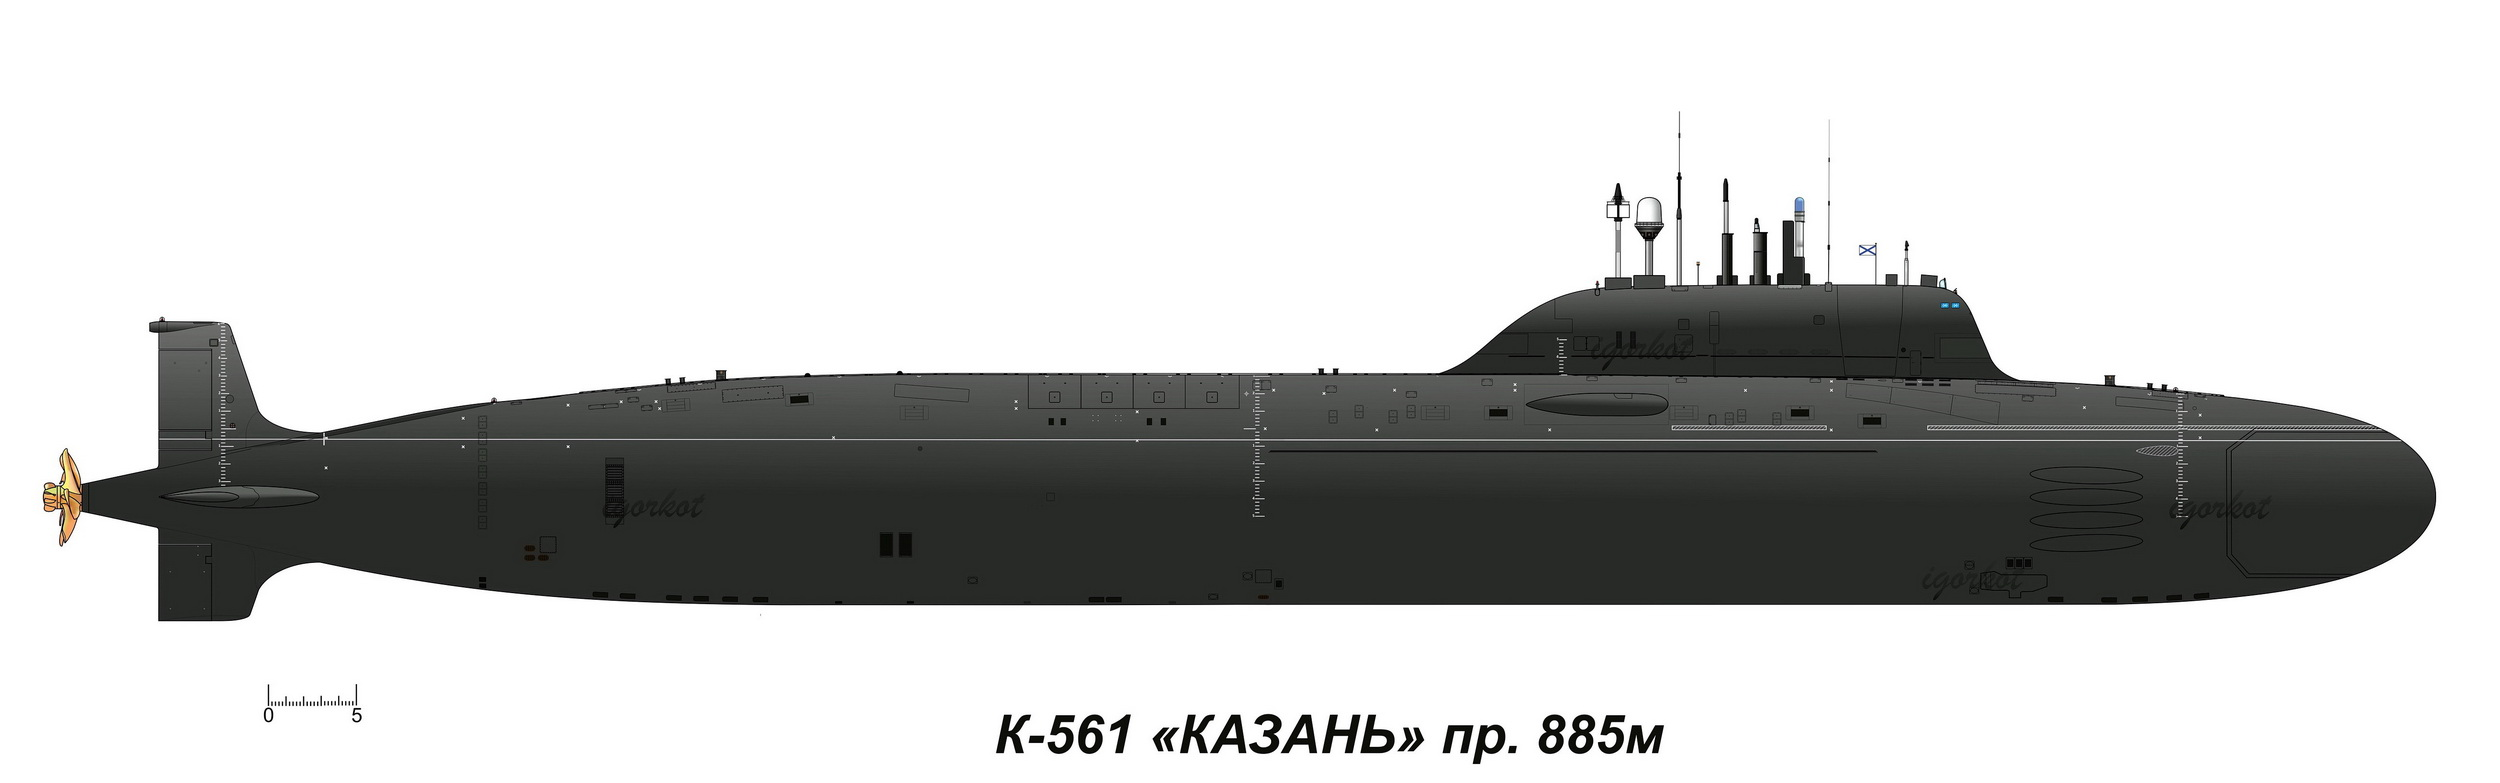 Project 885: Yasen class - Page 33 885m-small